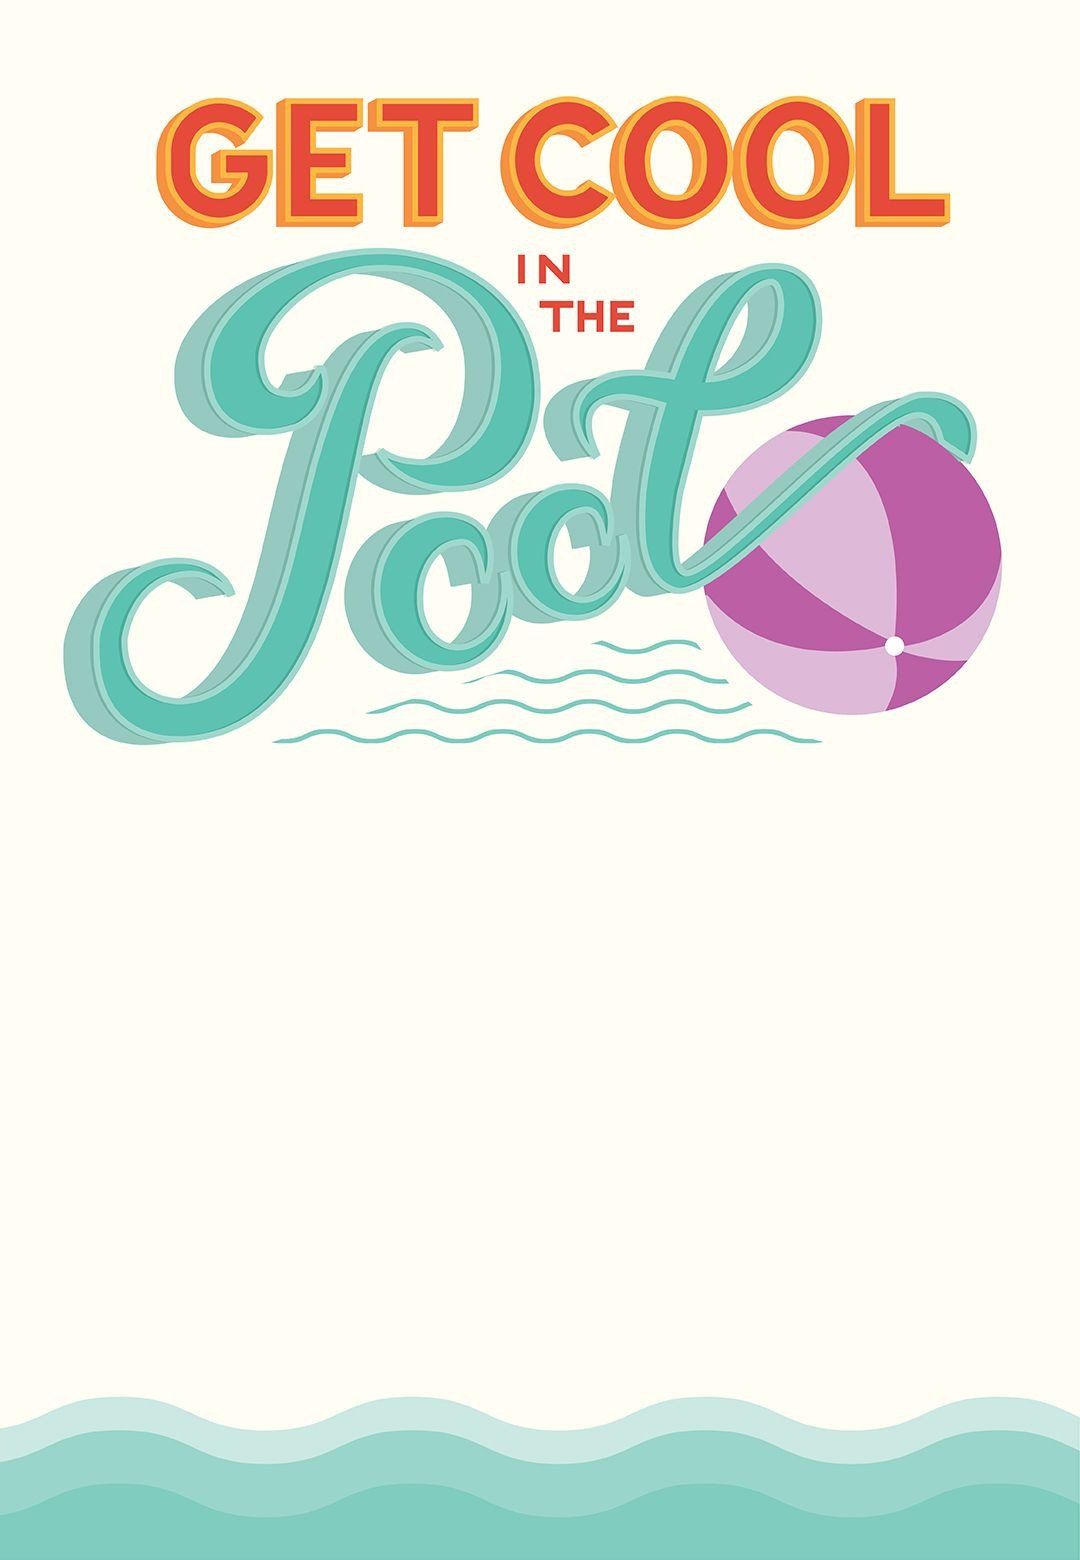 Pool Party Invitation Templates Pool Party Free Printable Party Invitation Template